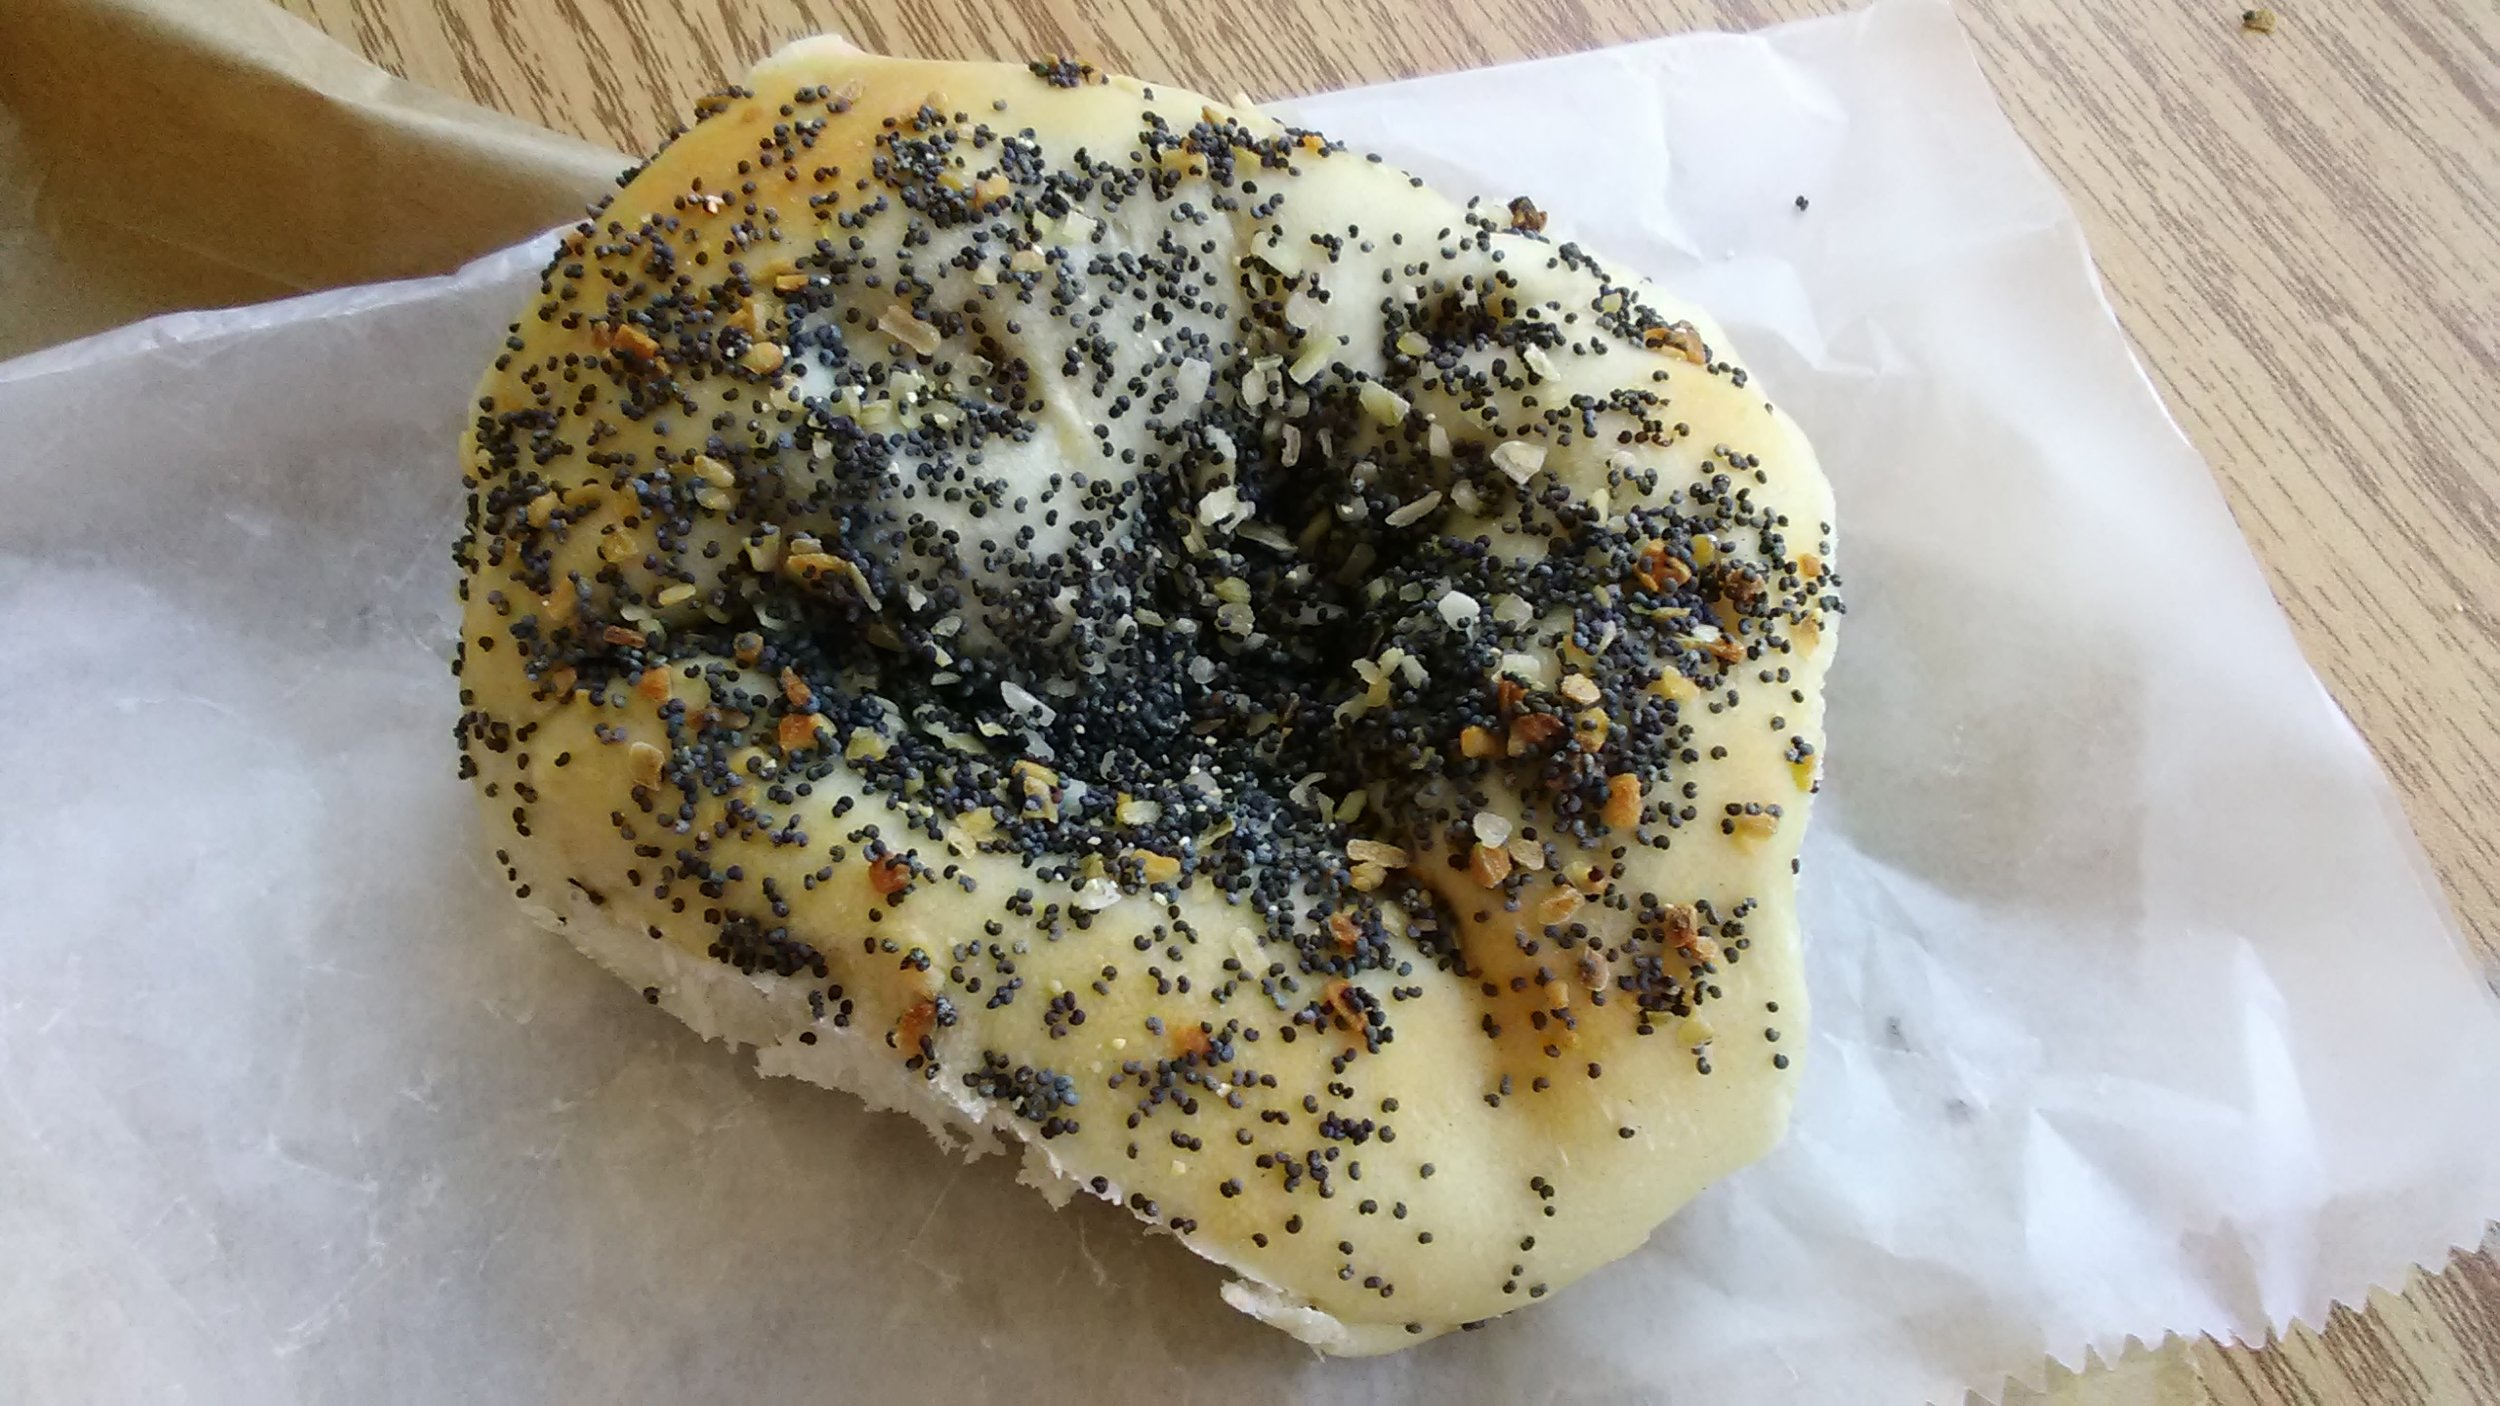 Fresh bialy from The Hot Bagel Shop.